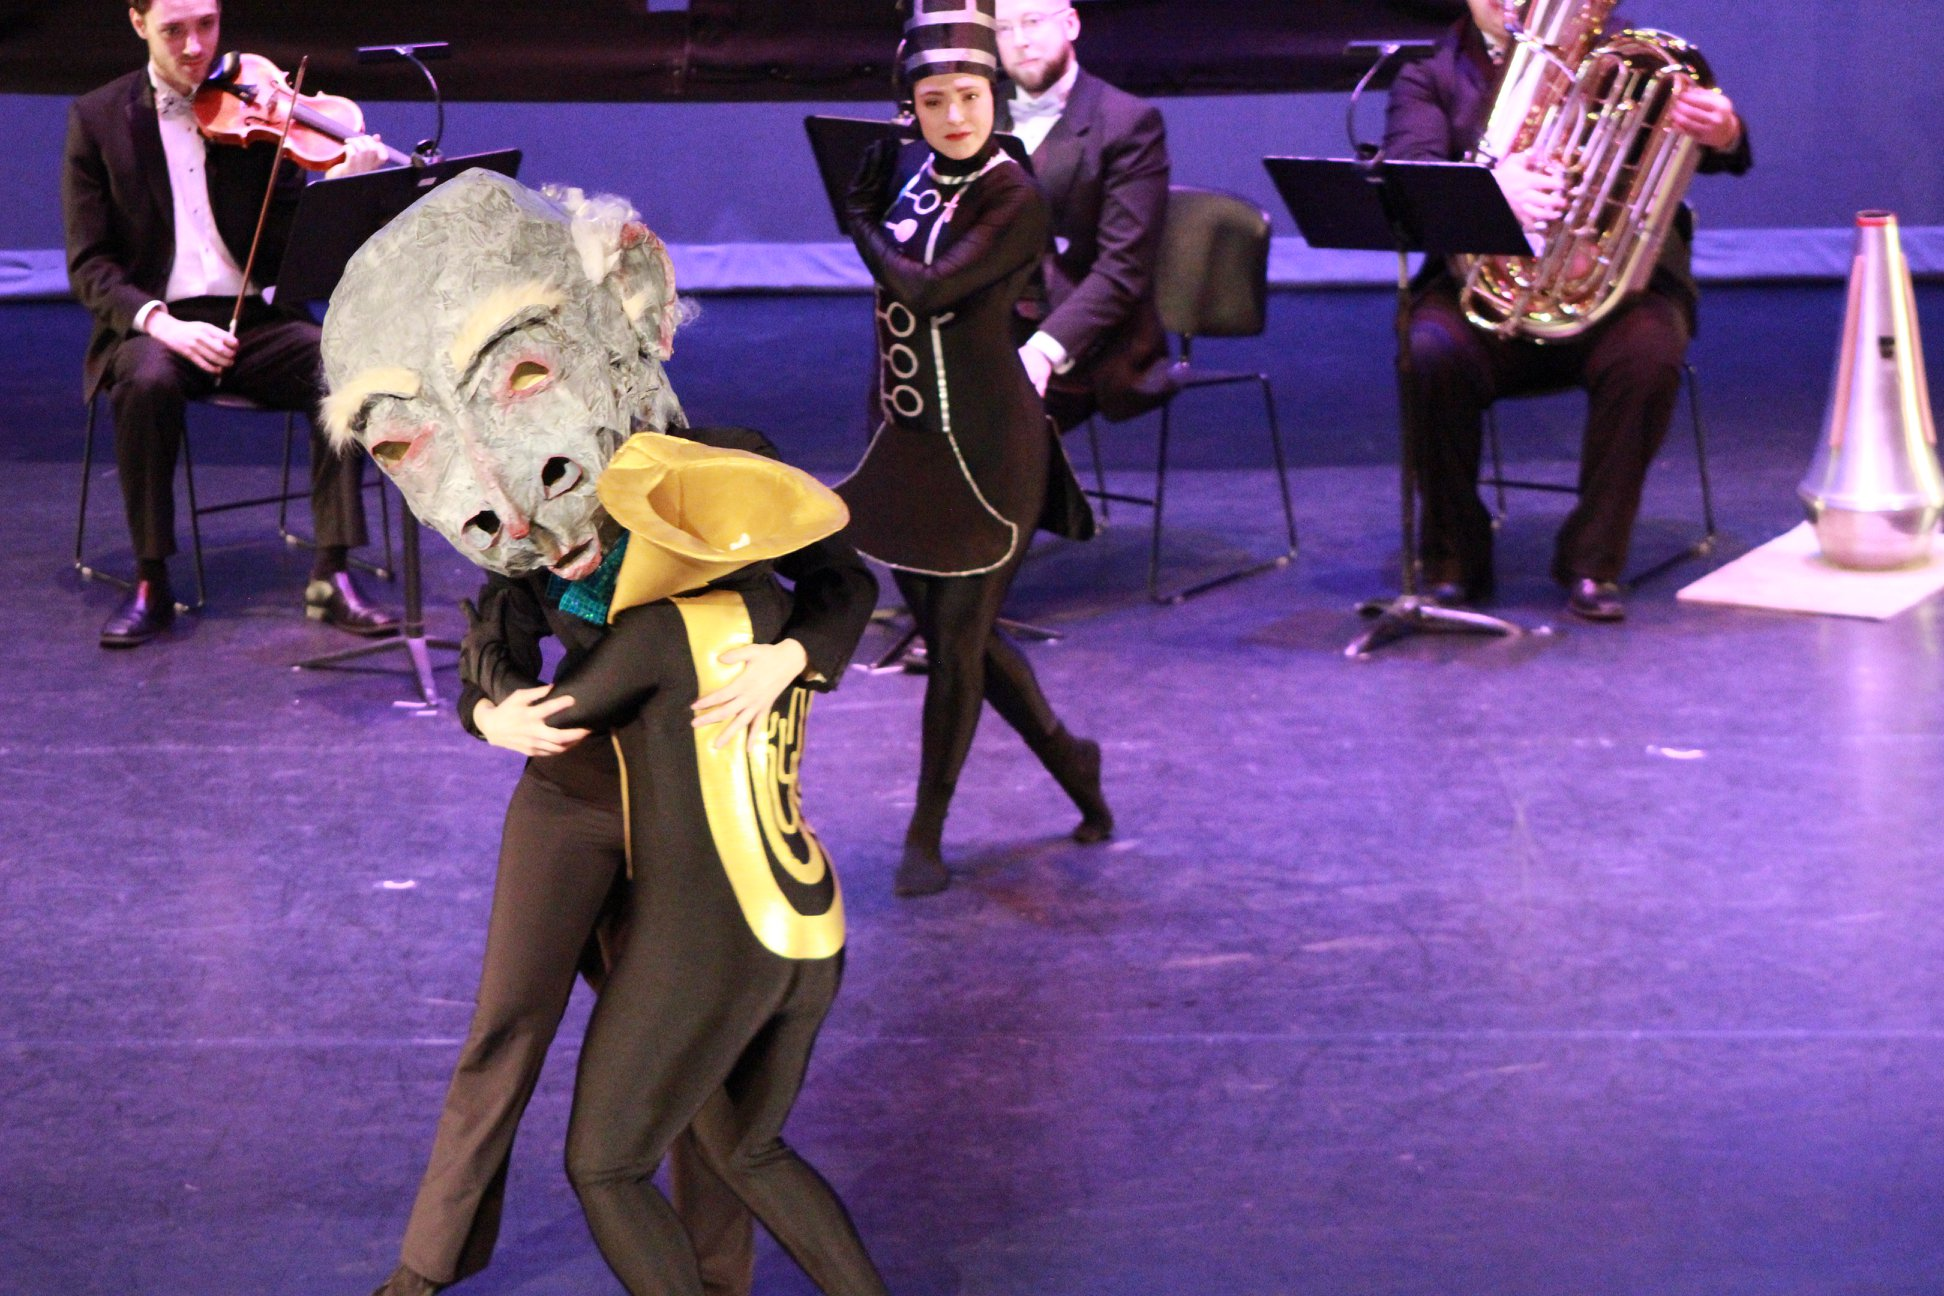 dancerorchestra1.jpg